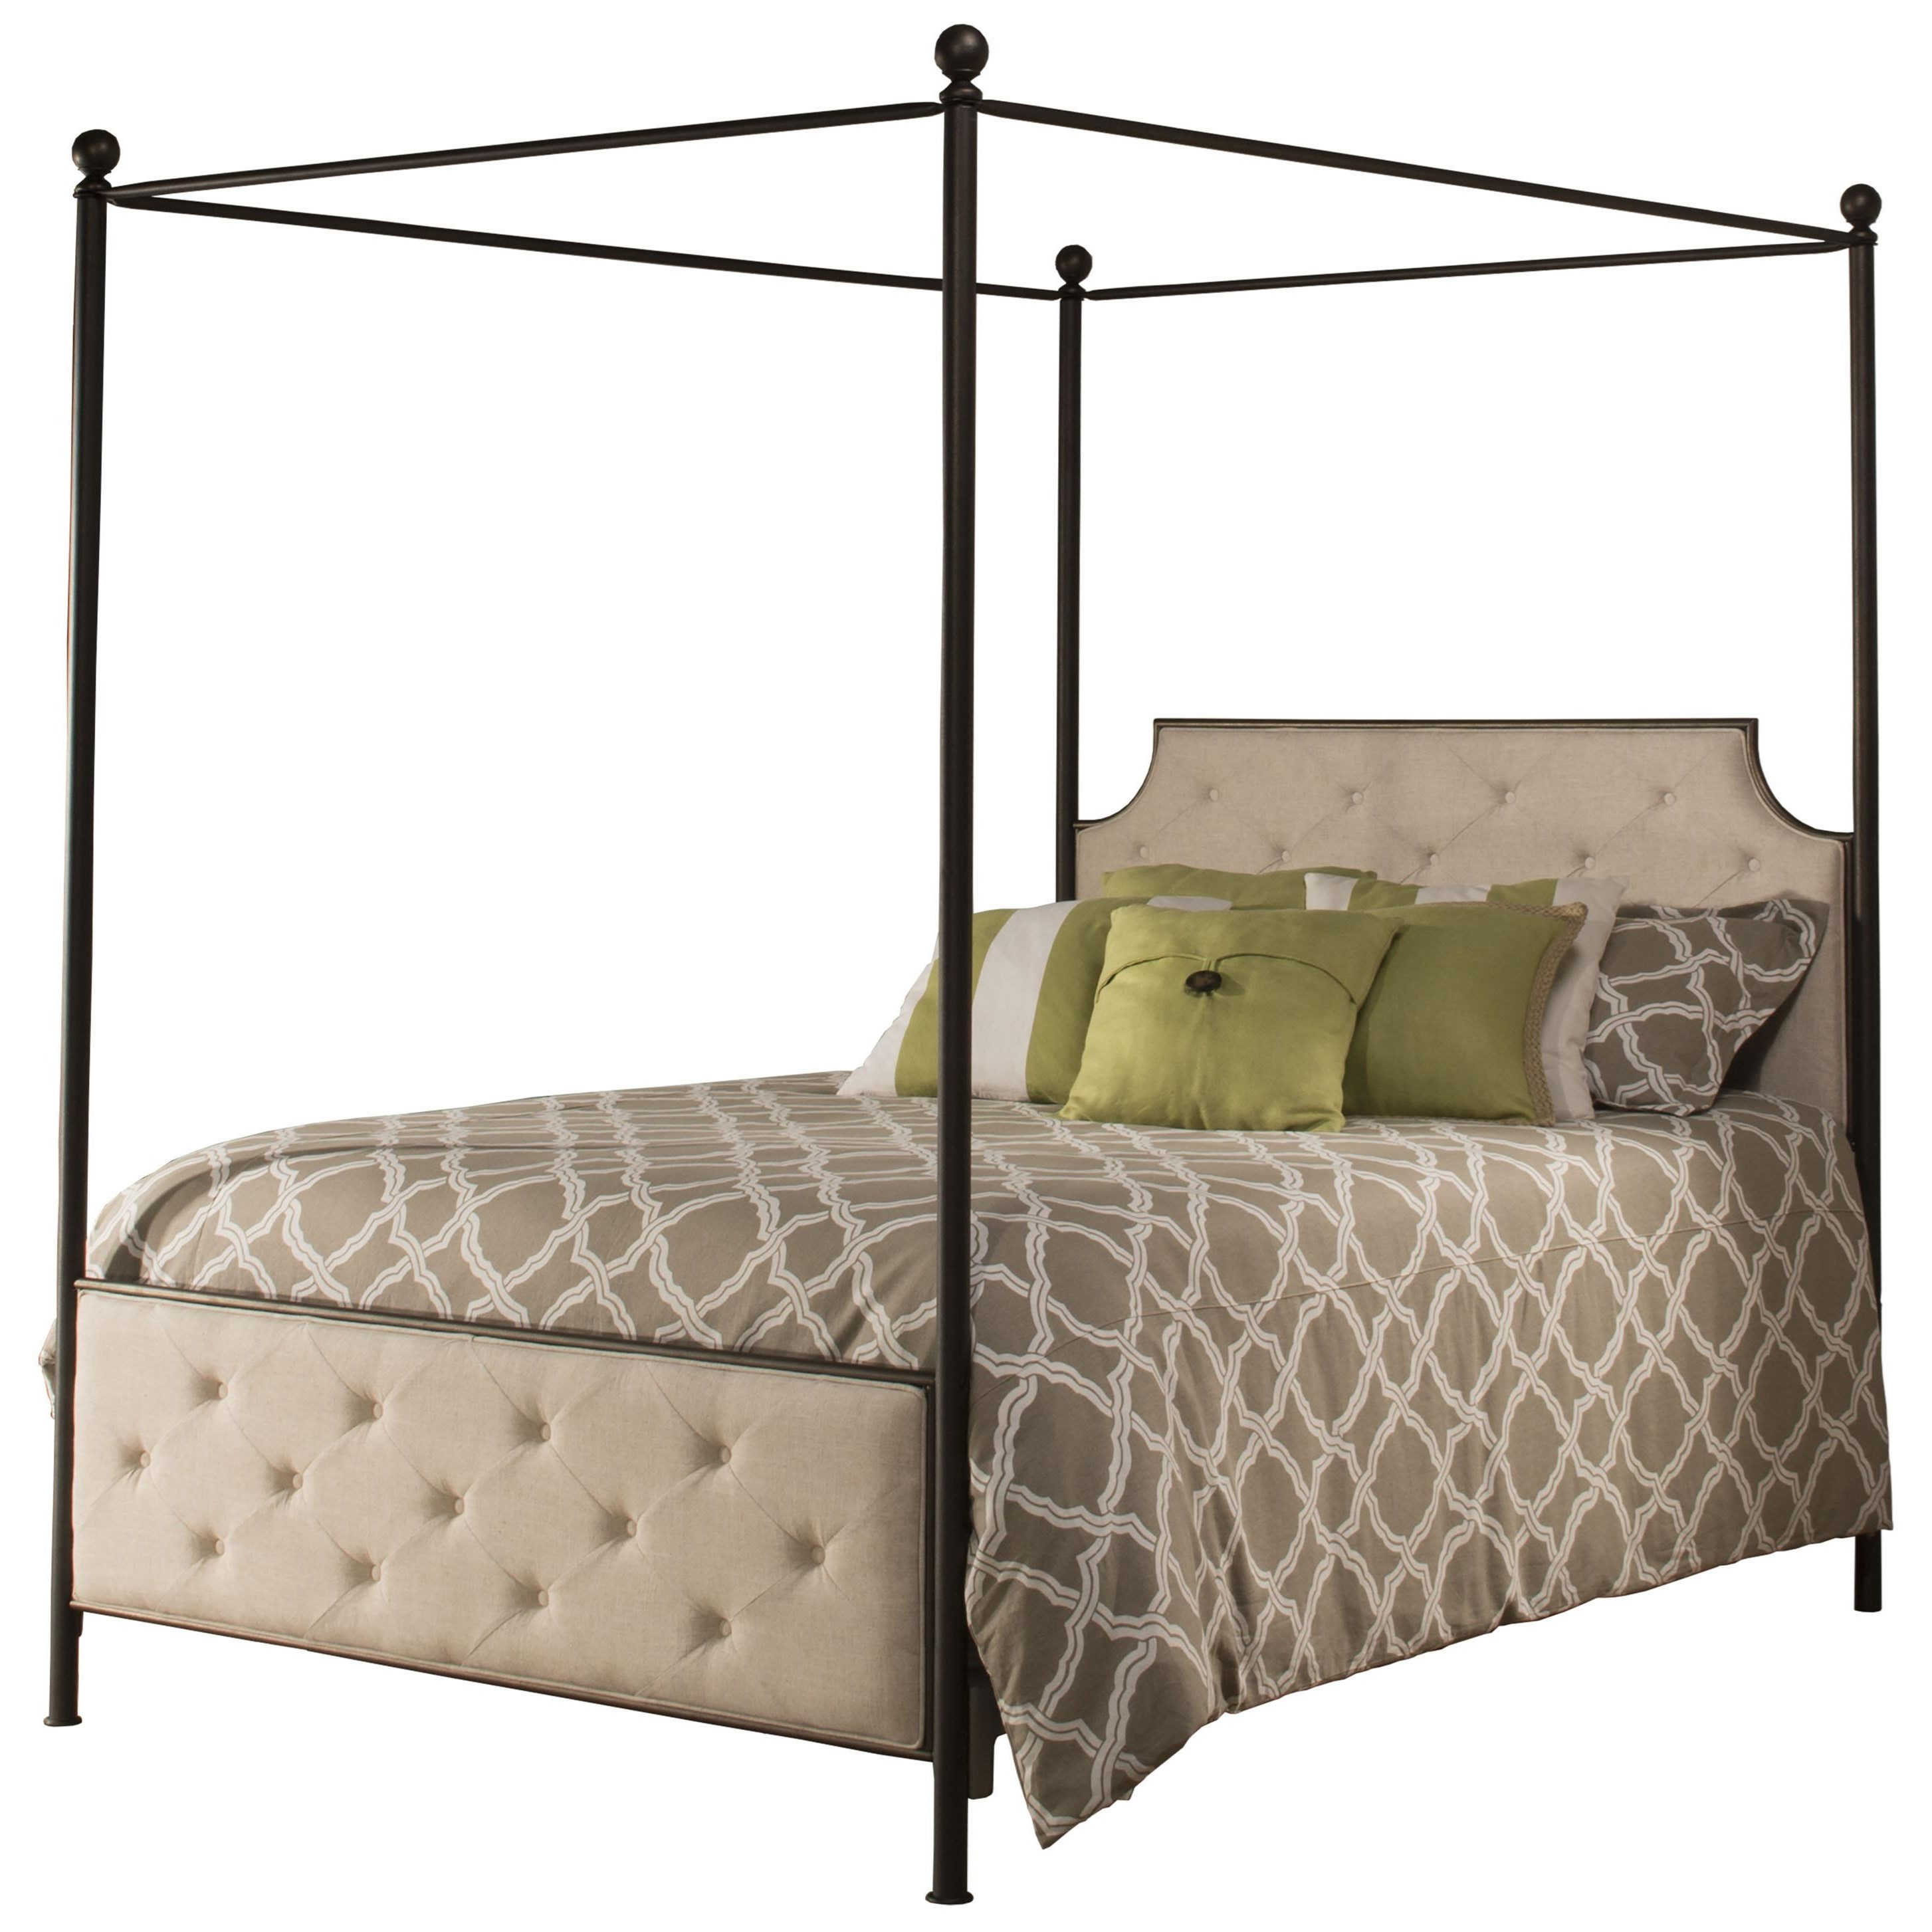 Hillsdale Metal Beds Queen Bed Set - Rails Not Included - Item Number: 1809BQC